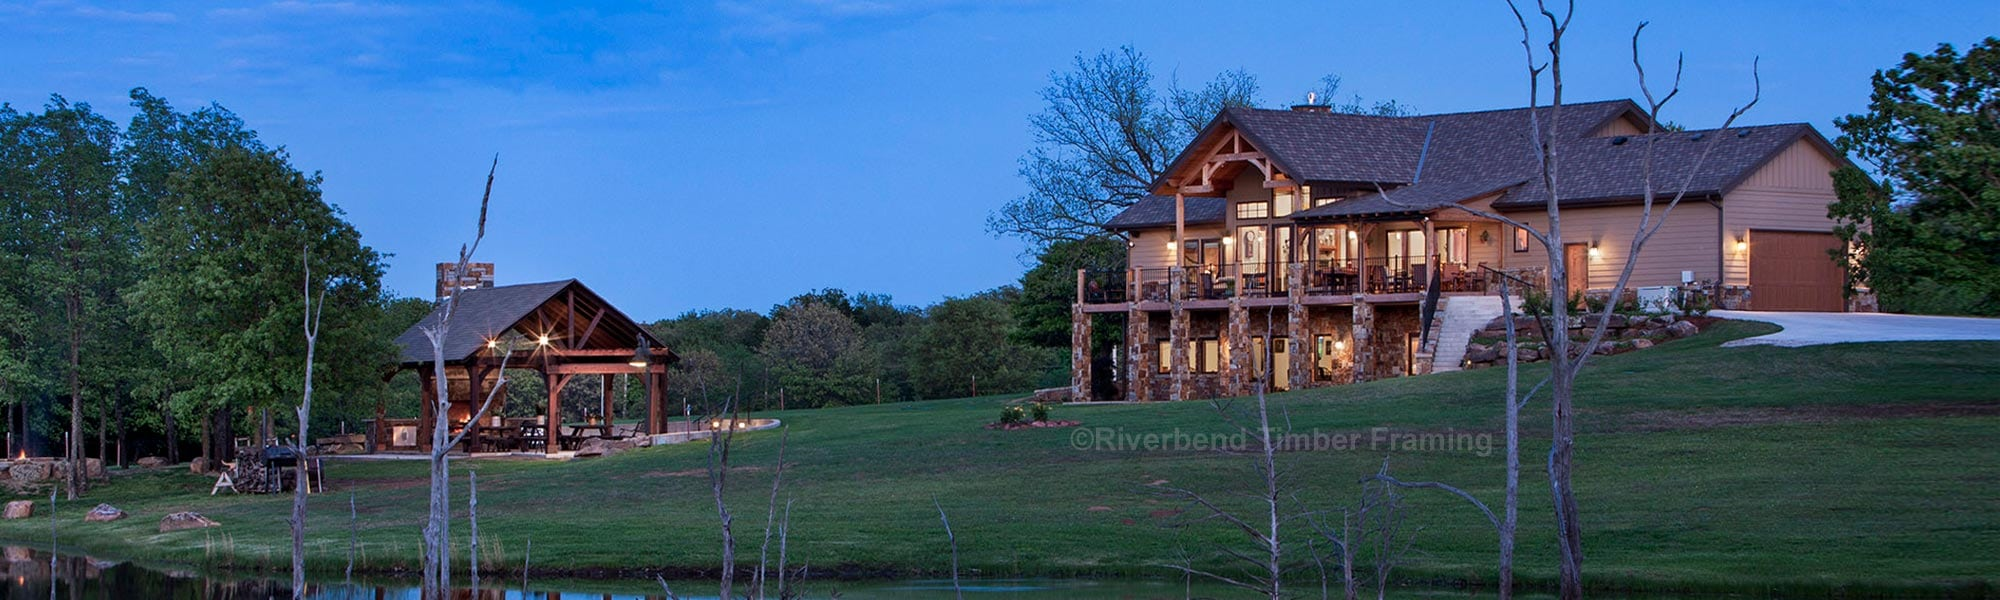 Oklahoma Timber Frame Home Photo